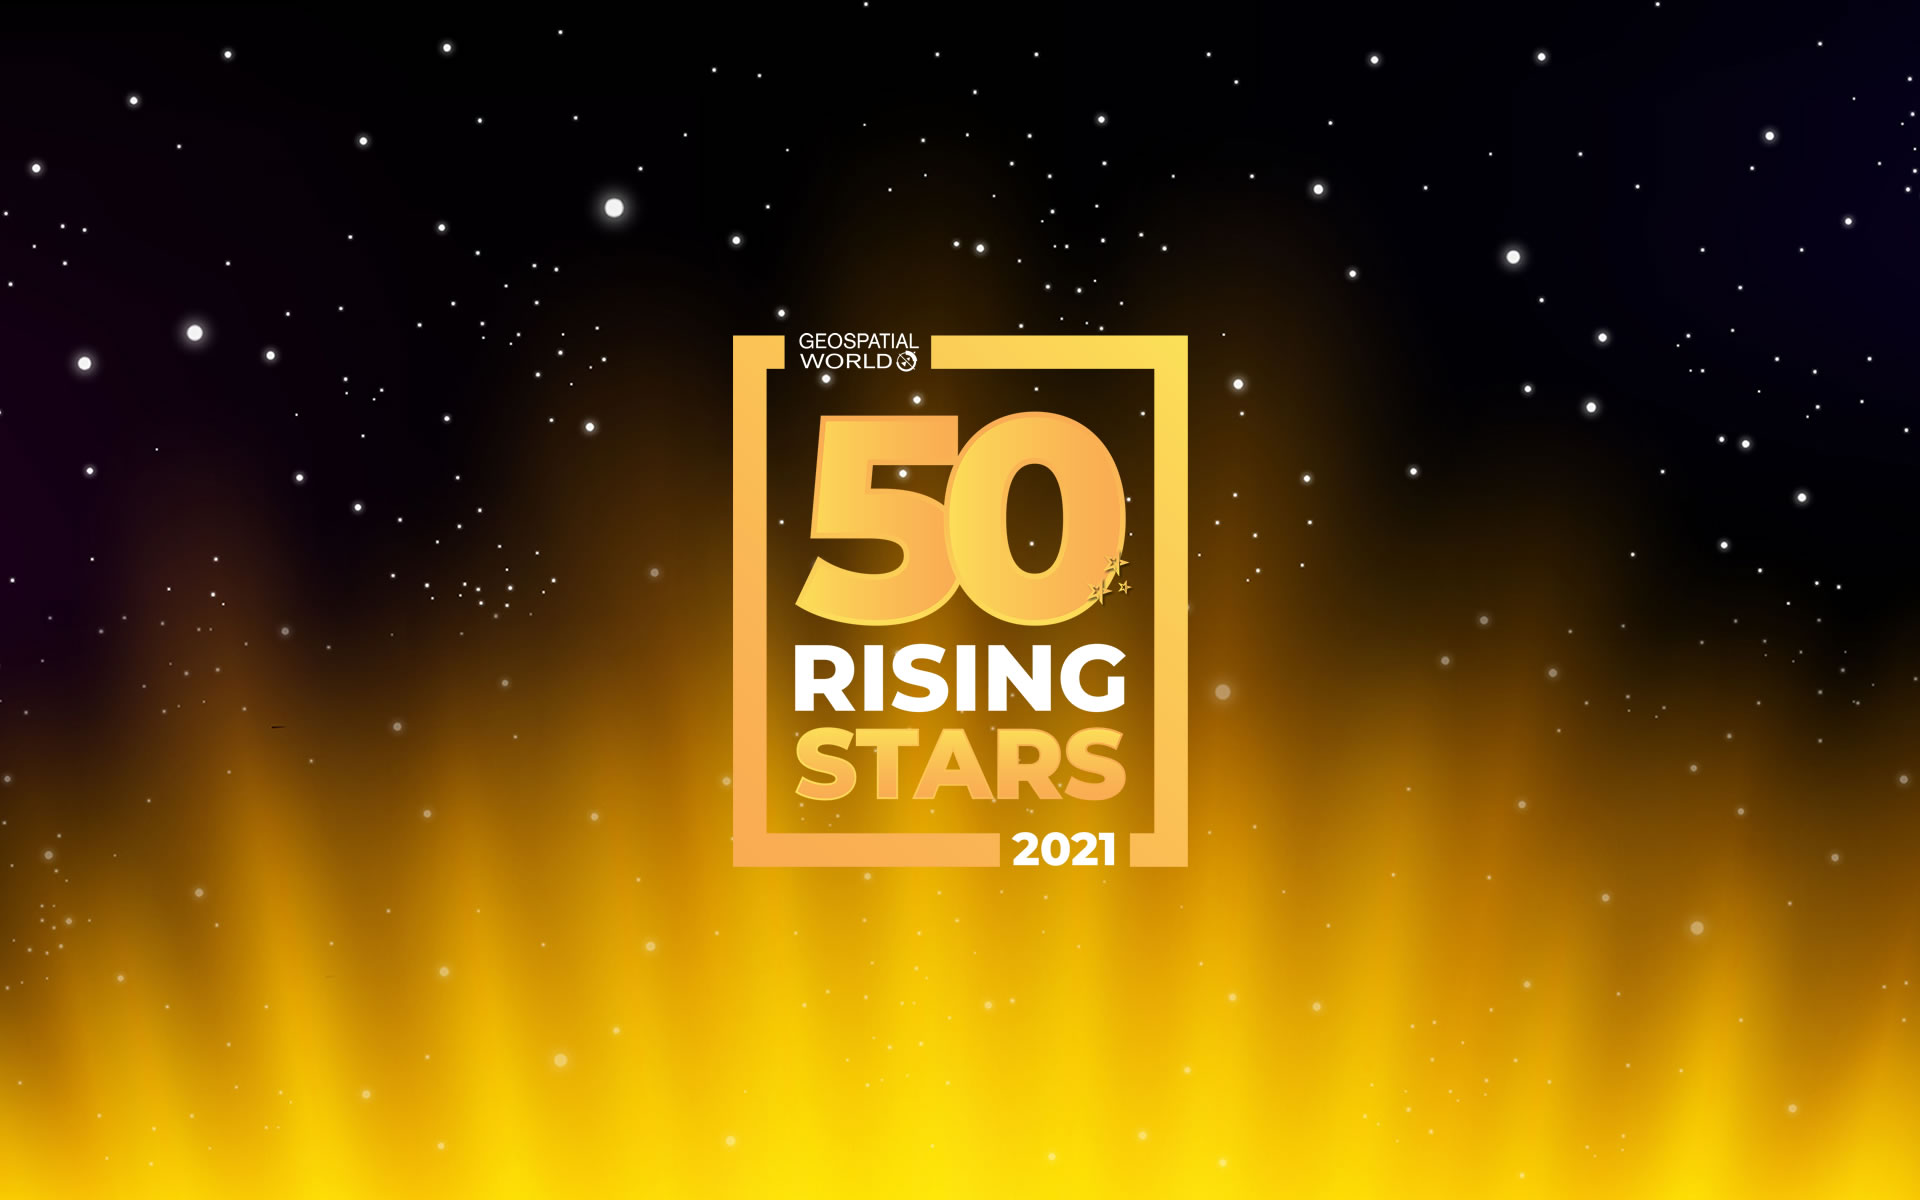 geospatial-world-rising-stars-2021-g